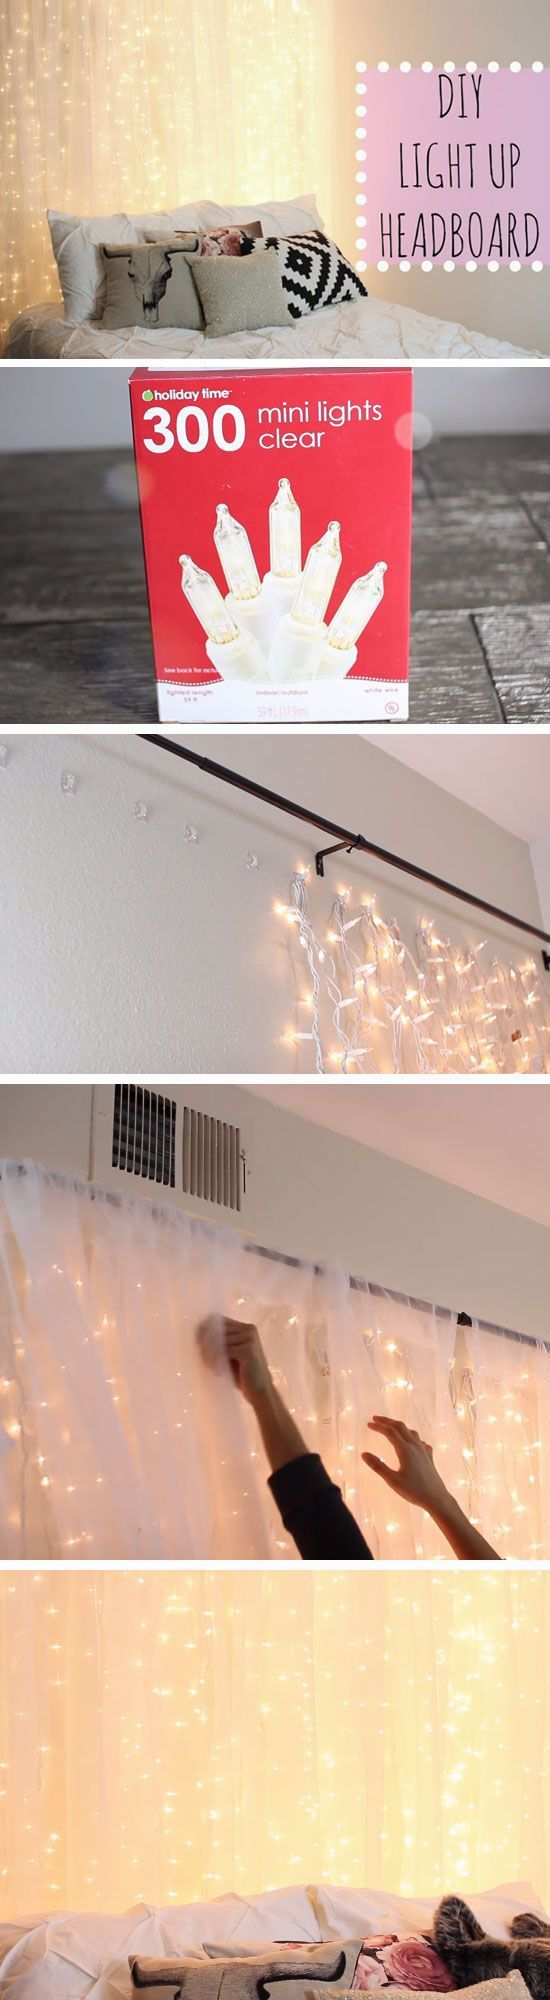 22 Ways To Decorate With String Lights For The Coolest Bedroom. Lighting  Ideas BedroomSpa Room ...